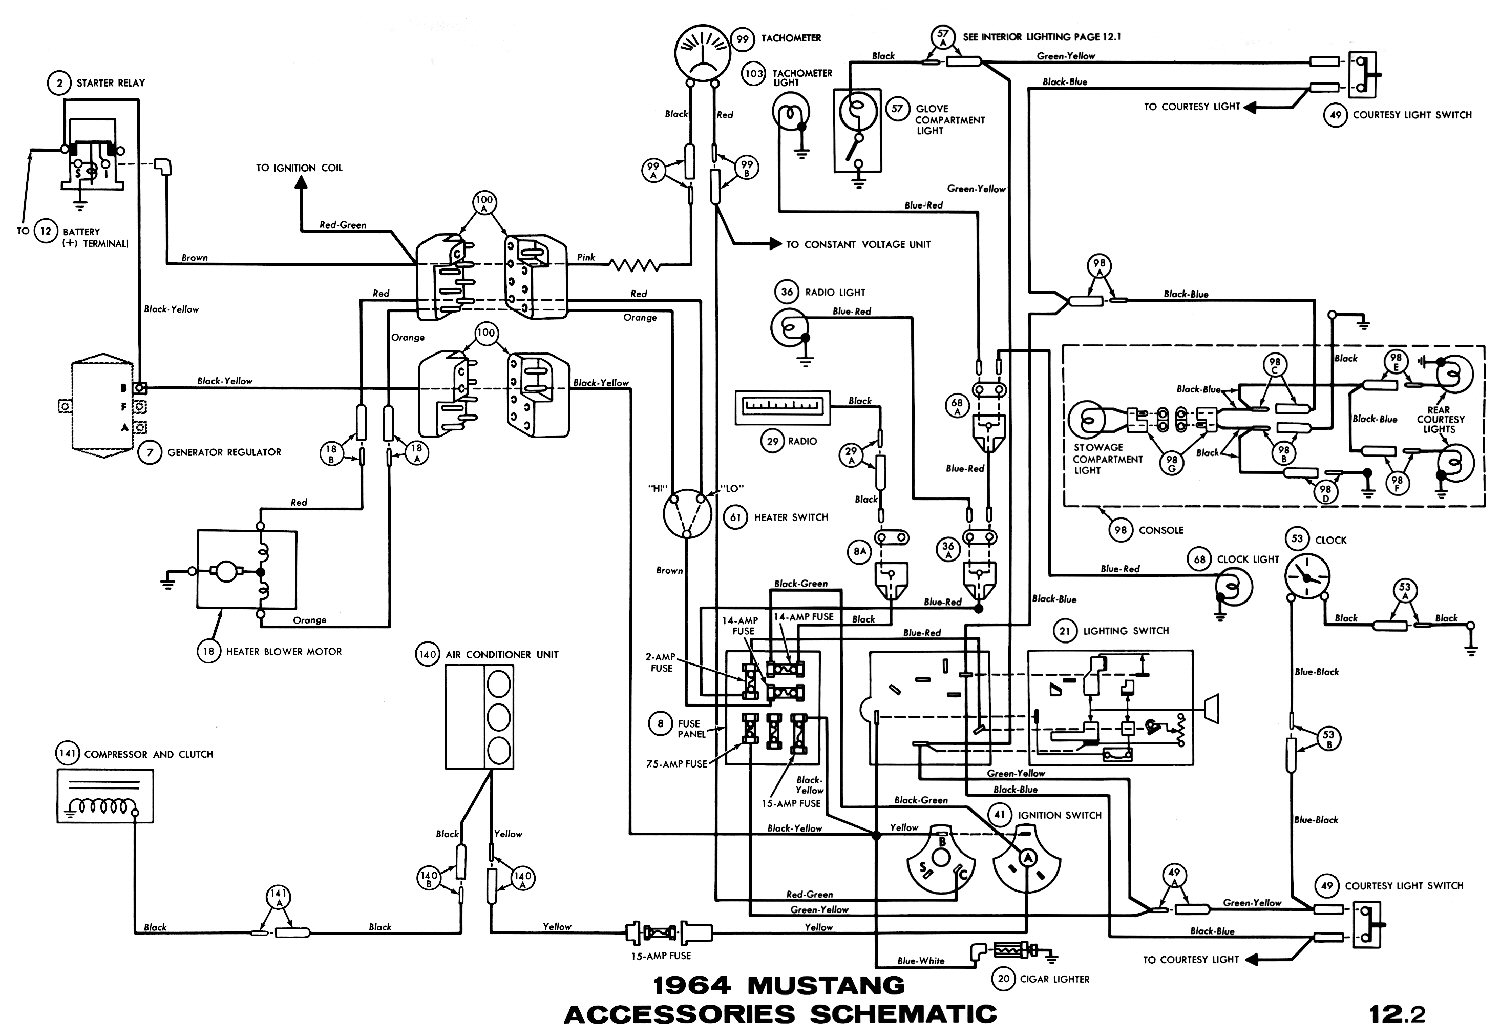 1965 Mustang Turn Signal Wiring Diagram from www.ht67.com